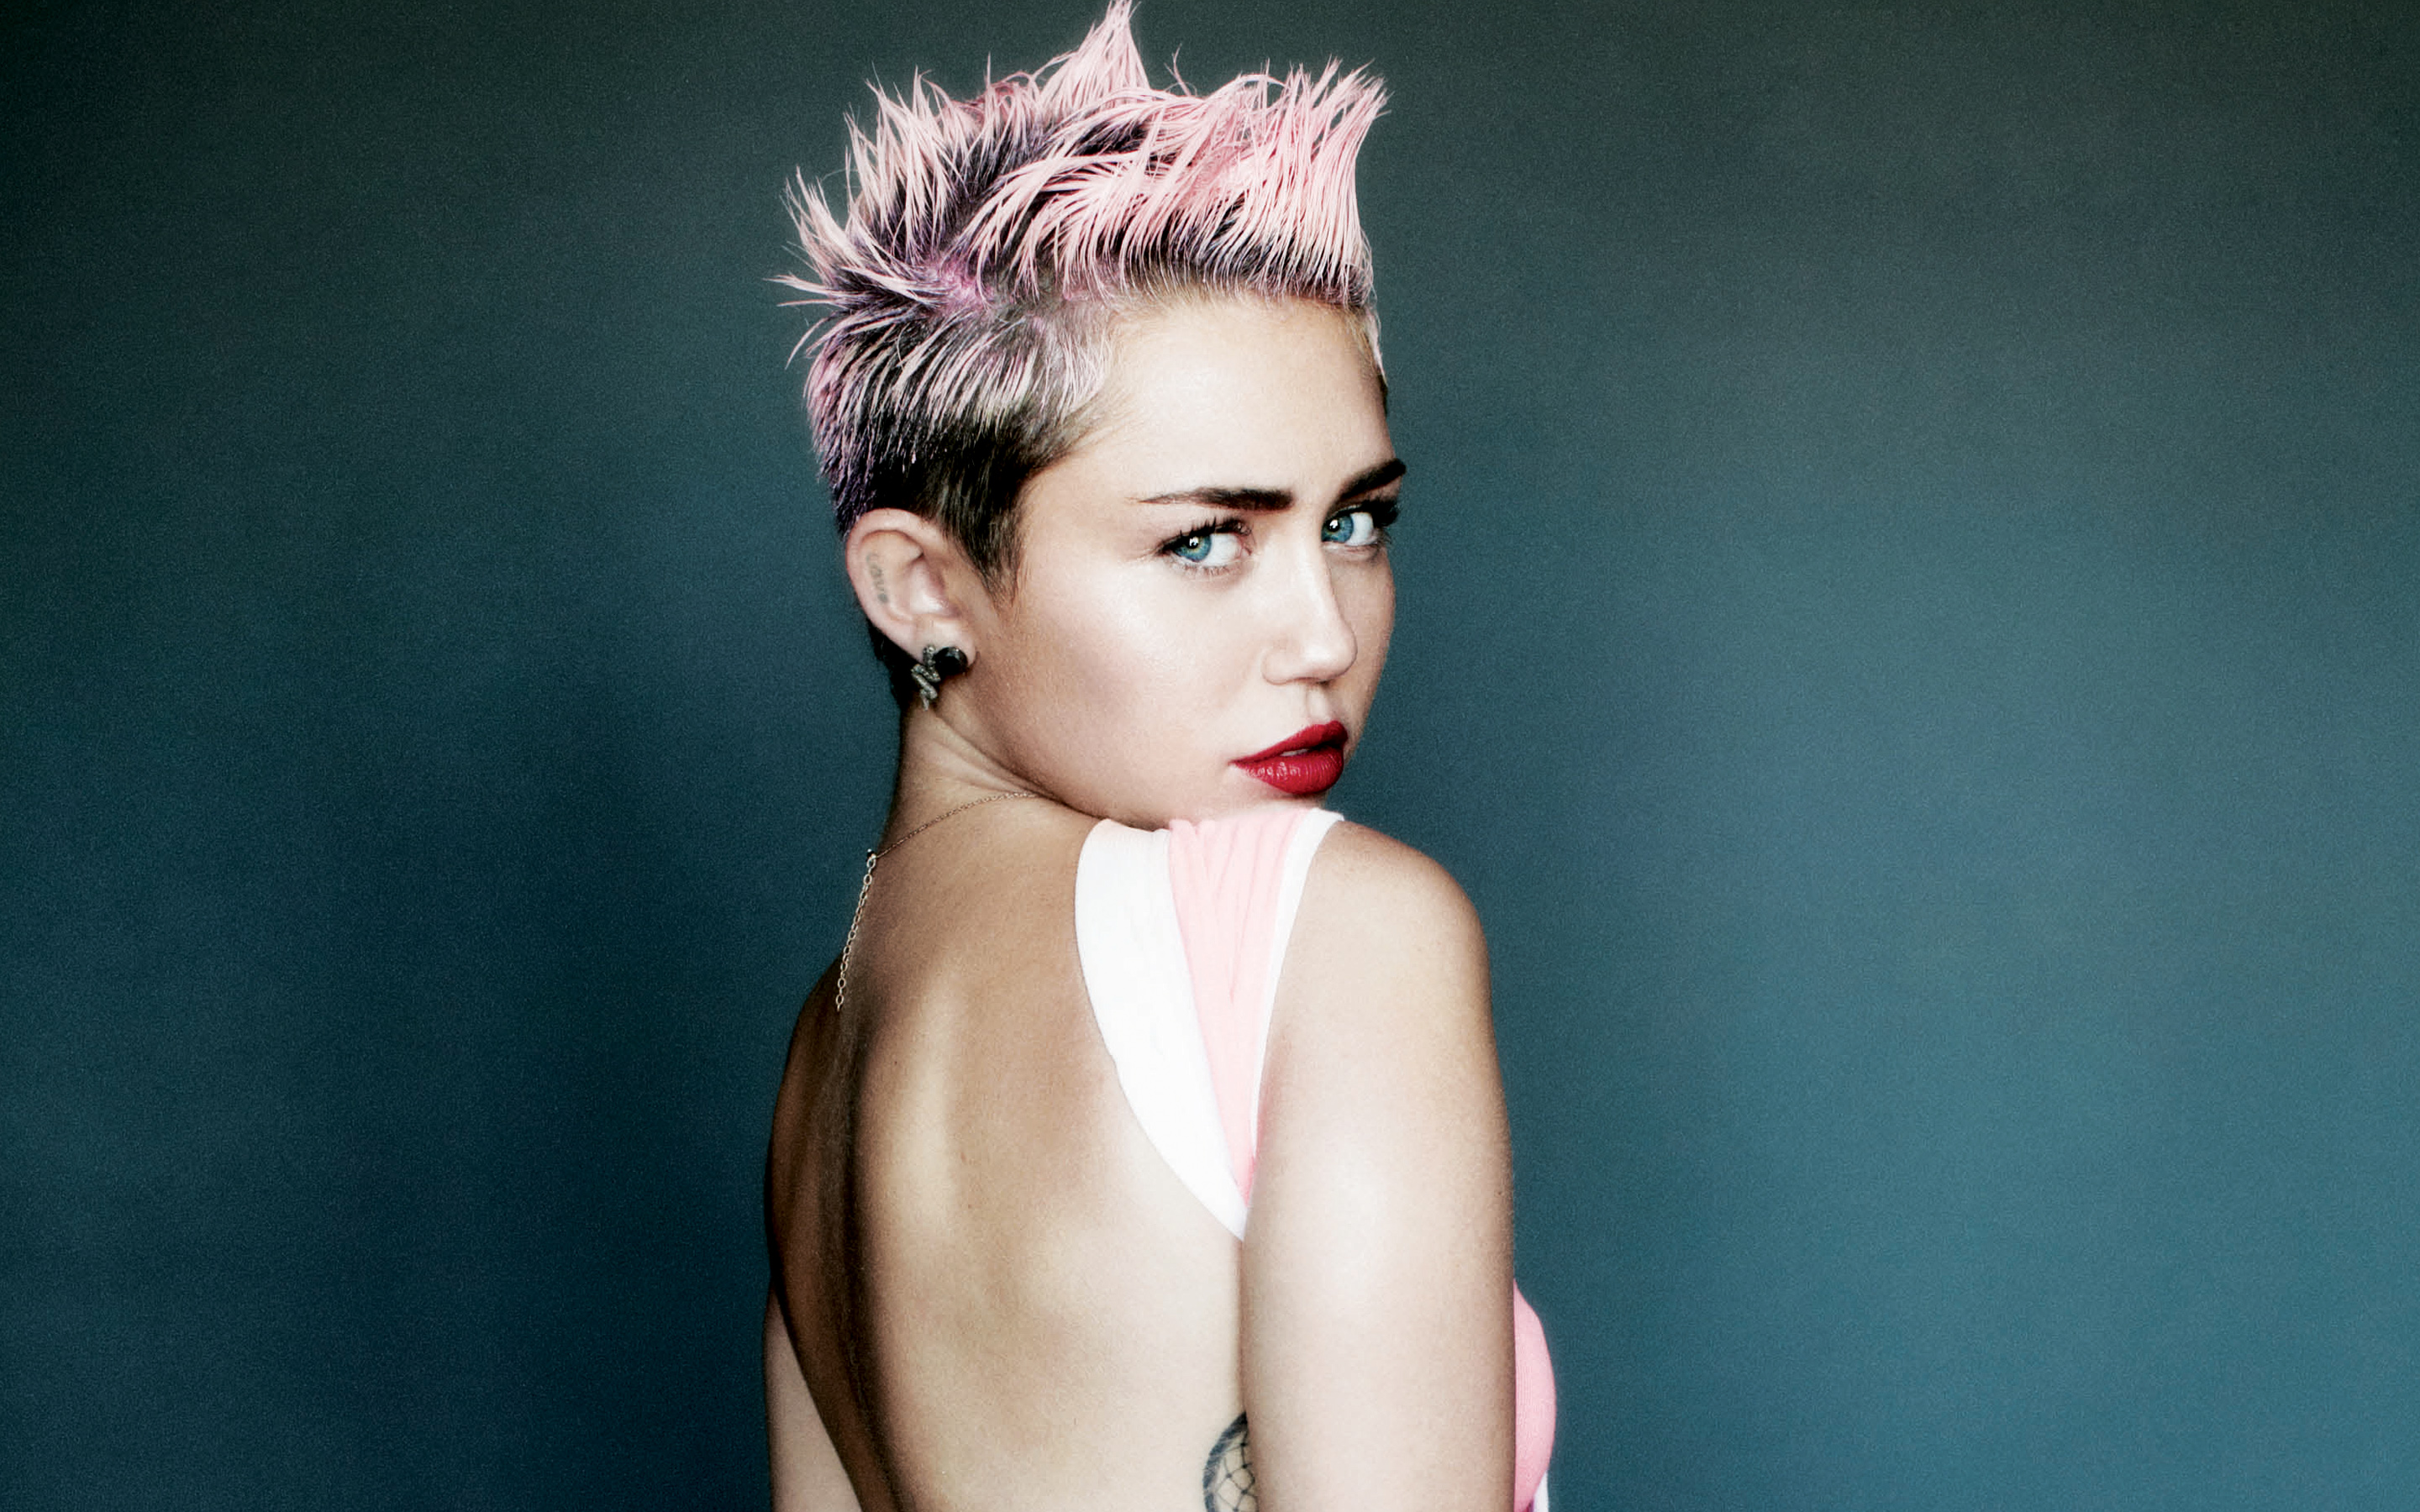 Miley Cyrus+Wallpaper